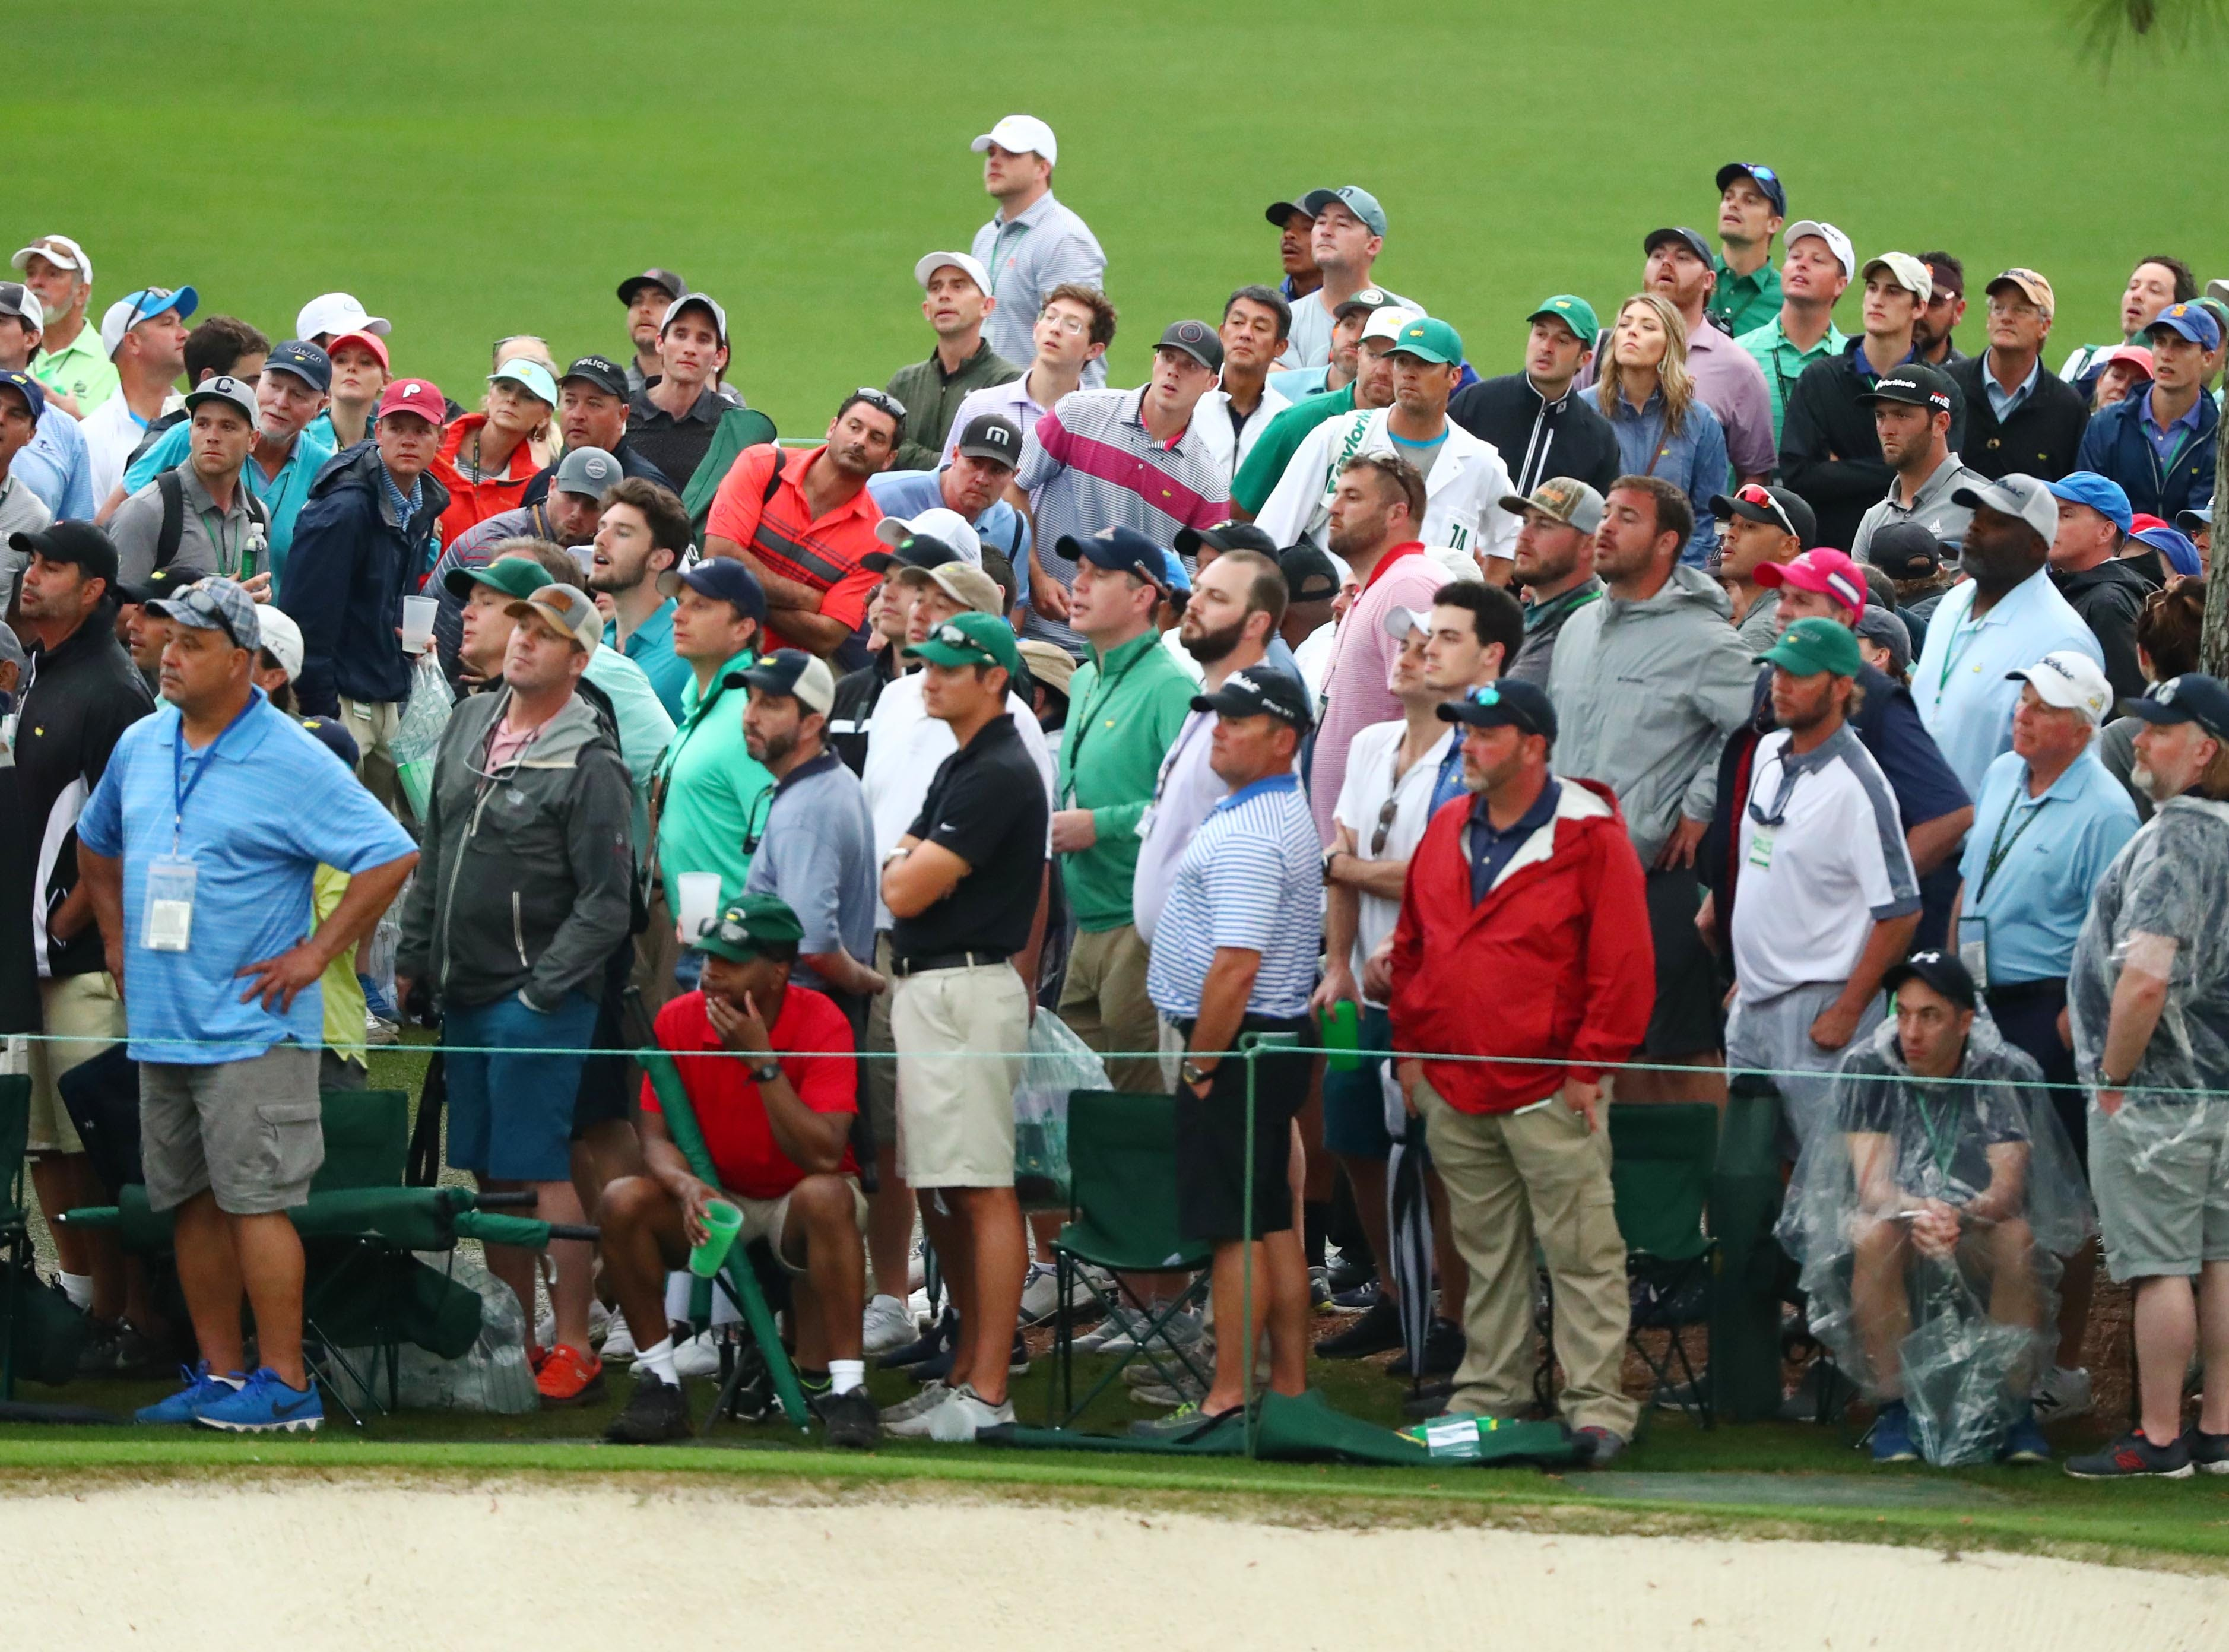 Apr 12, 2019; Augusta, GA, USA; Jon Rahm hits out of the gallery on the 15th hole during the second round of The Masters golf tournament at Augusta National Golf Club. Mandatory Credit: Rob Schumacher-USA TODAY Sports